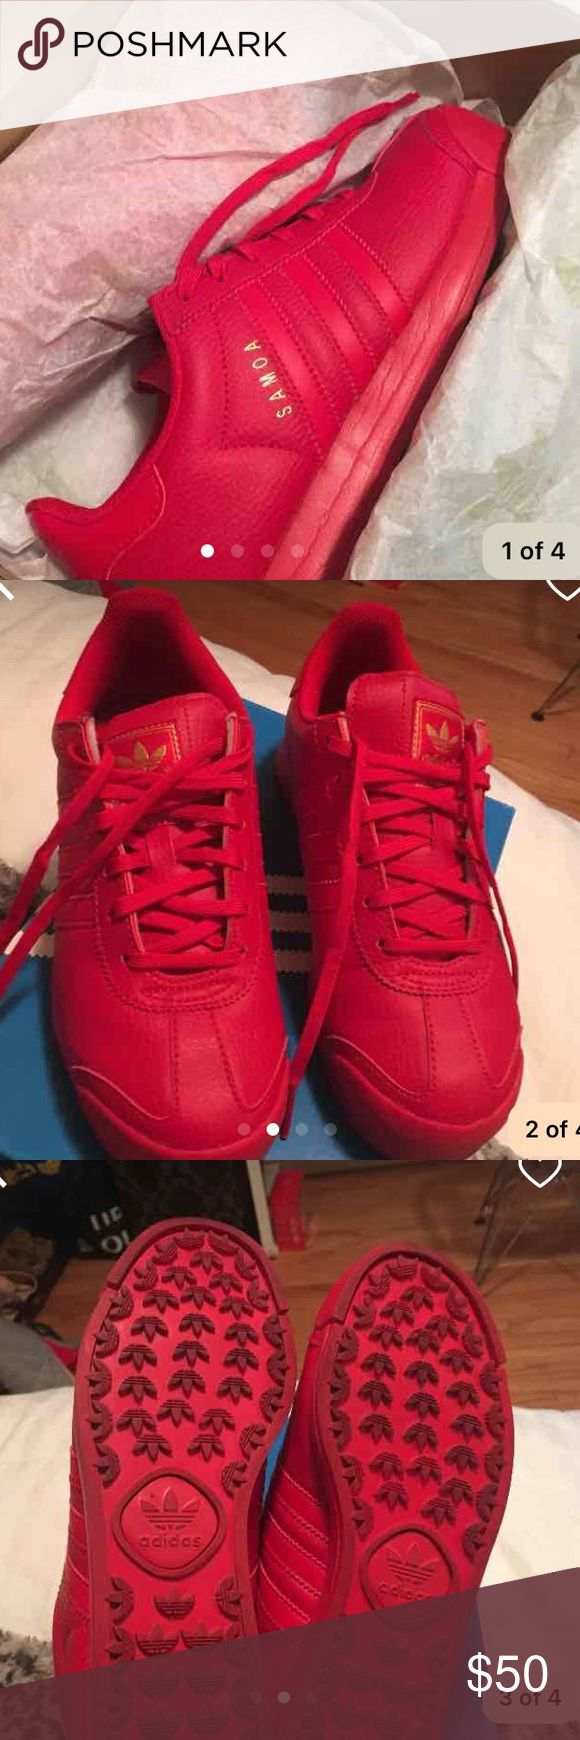 Adidas Samoas All red Adidas. Size 5 kids or 6 womens. Great condition Adidas Shoes Sneakers